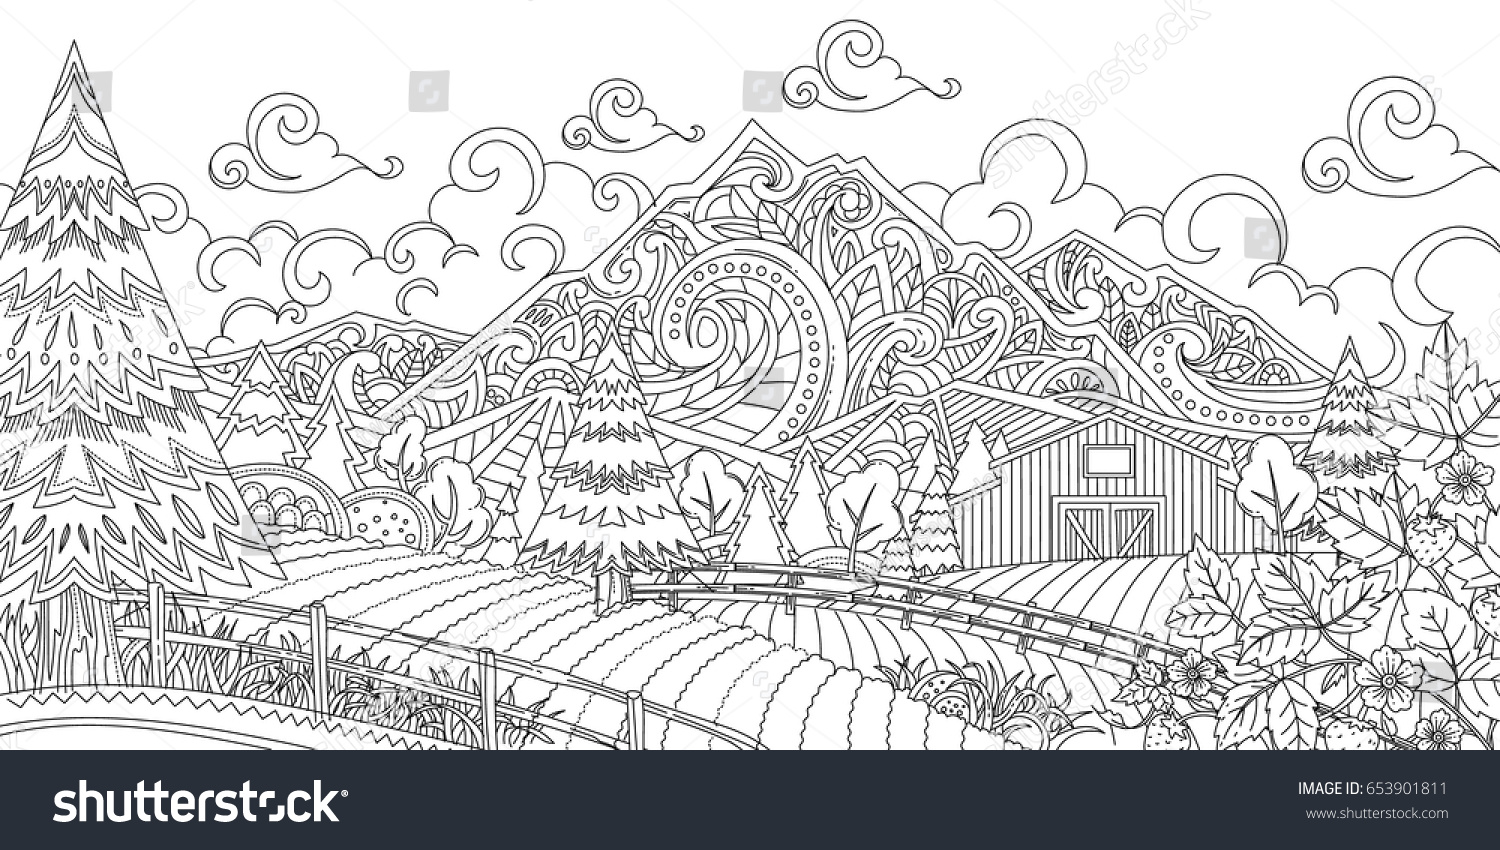 Adult Coloring Illustration Of New Zealand Farm